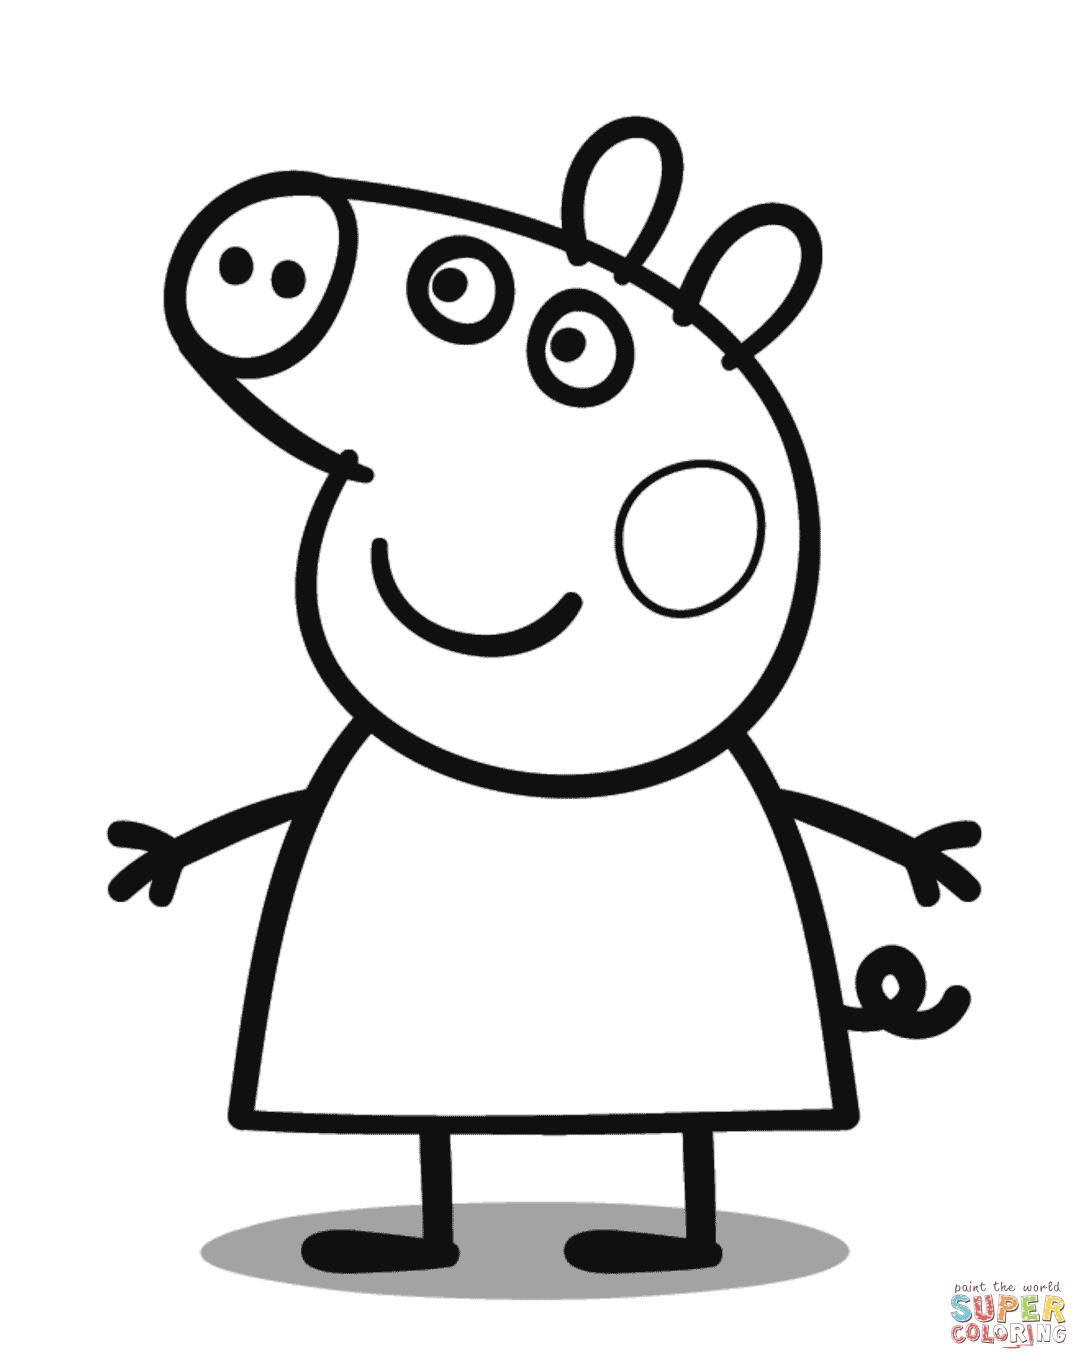 Pig Cartoon Drawing At GetDrawings